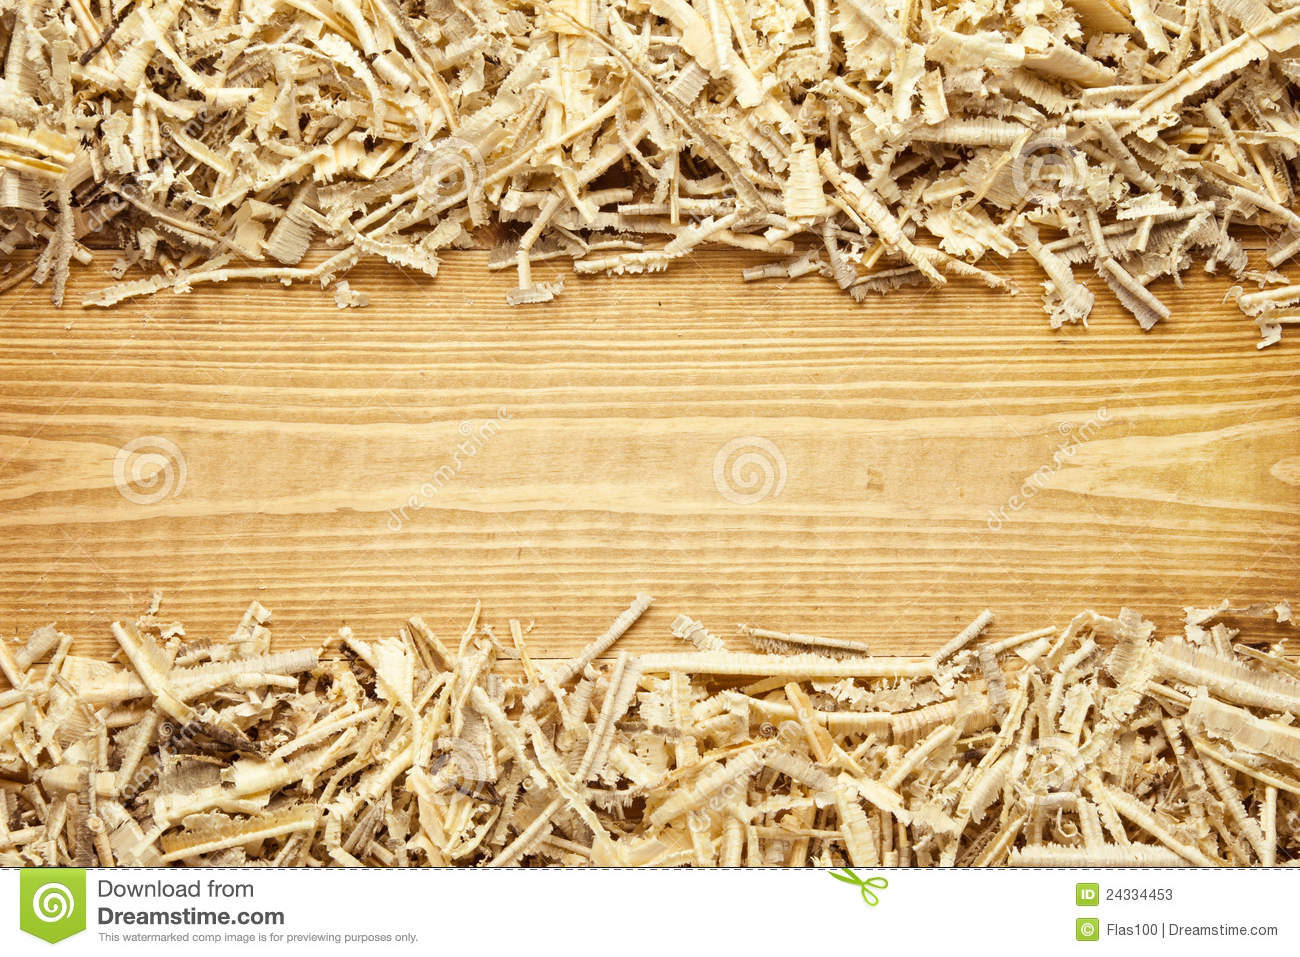 How Different Are Wood Shavings And Sawdust ~ Wooden sawdust and shavings background stock photos